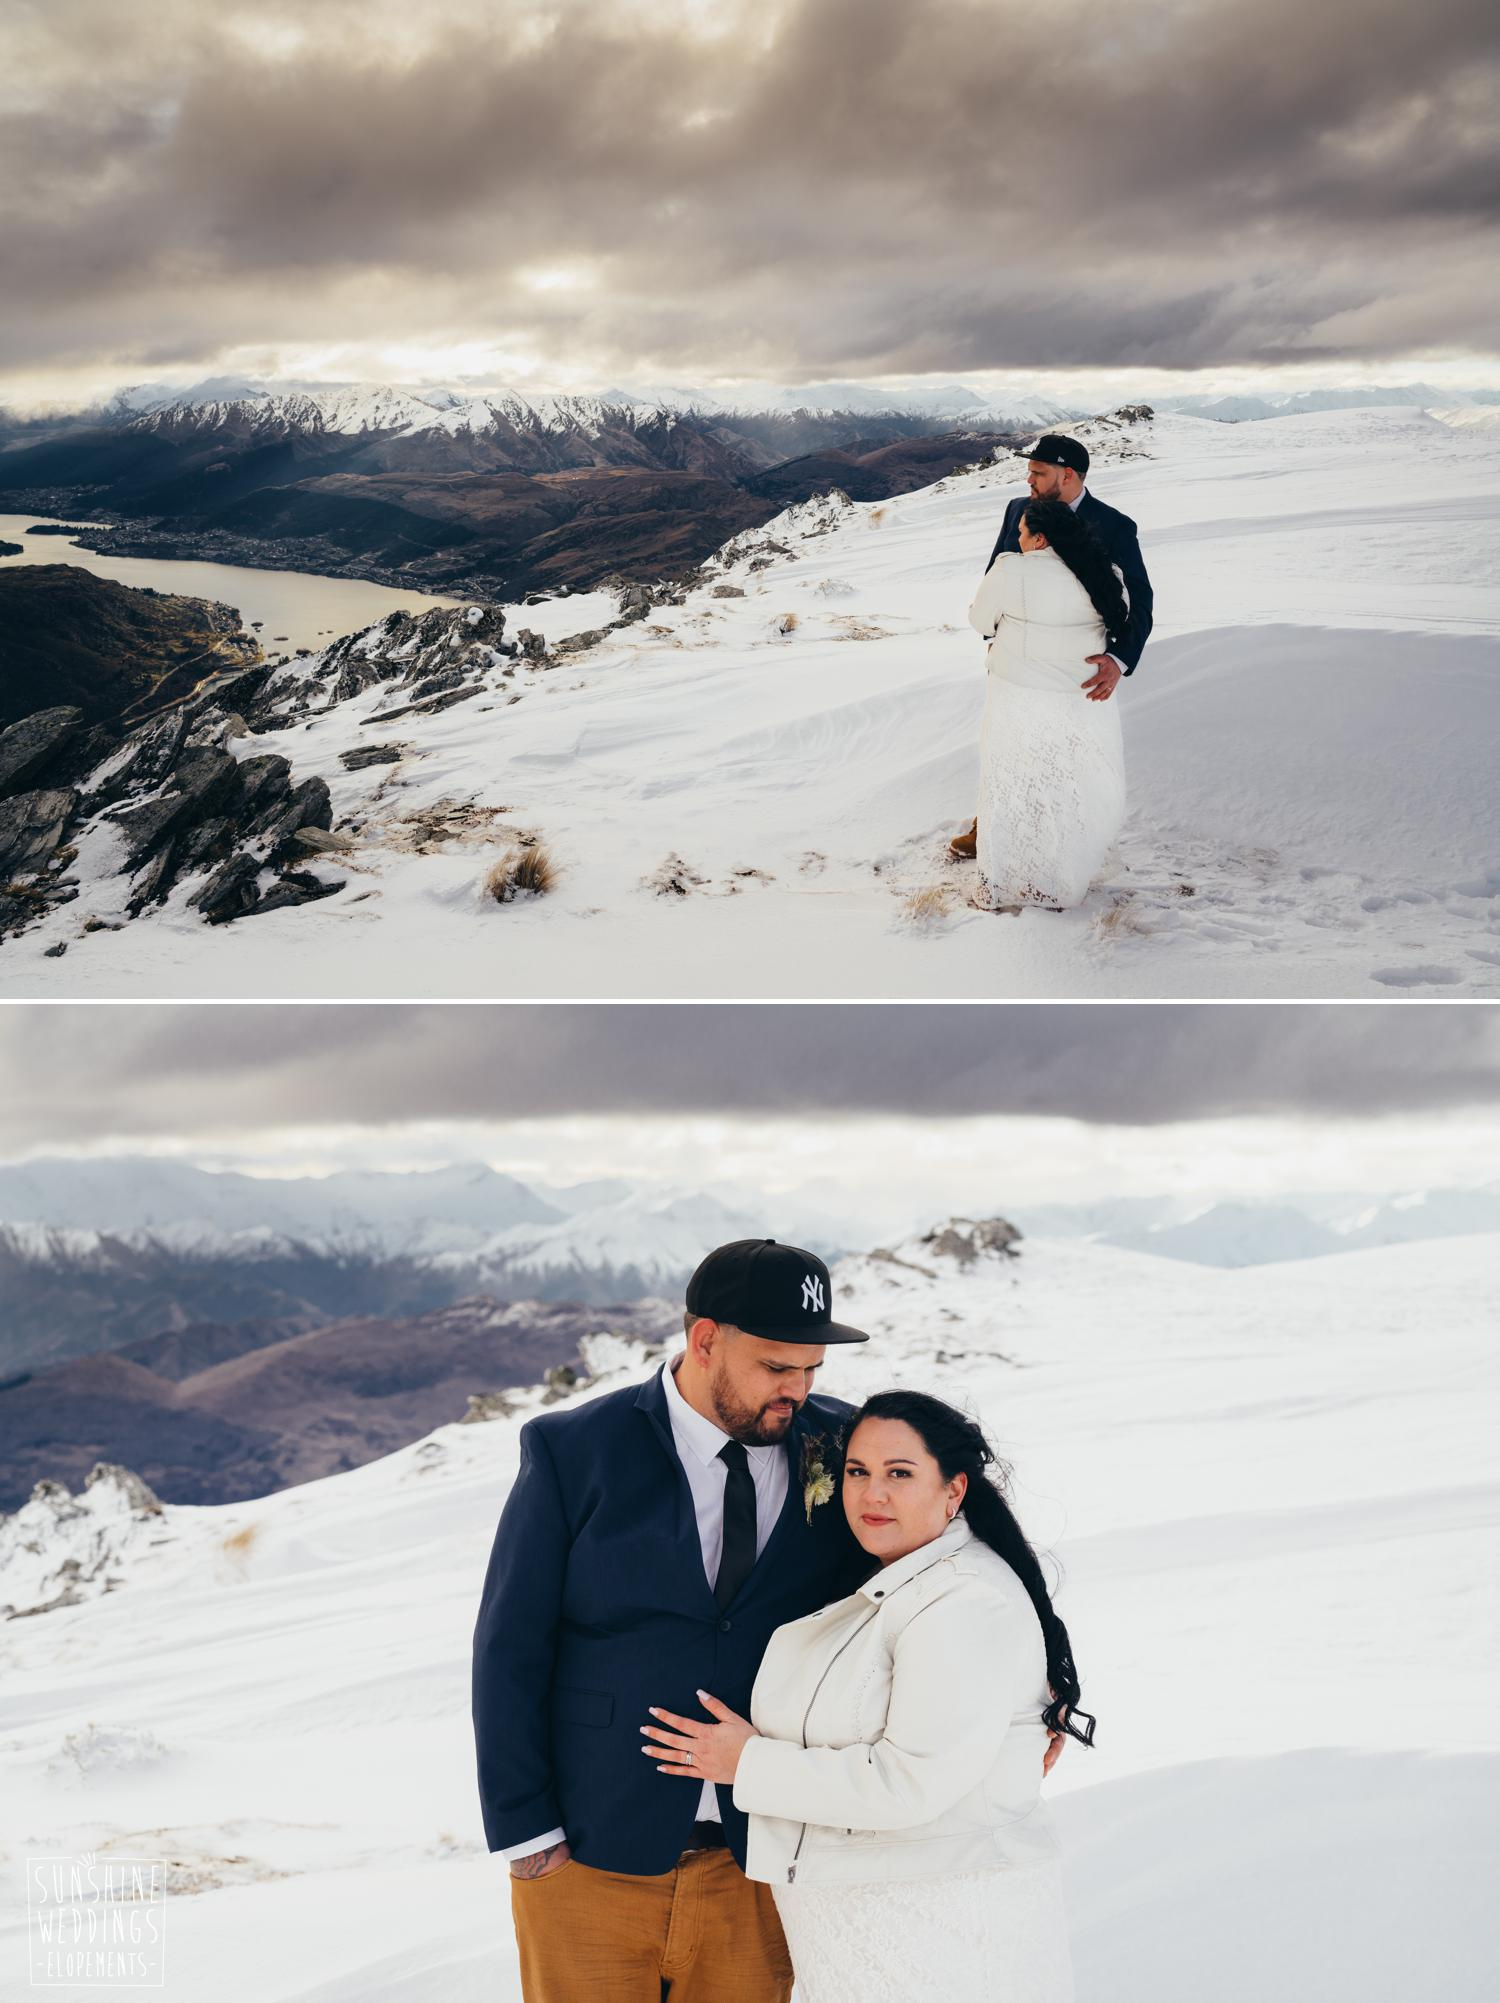 The Remarkable winter heli wedding